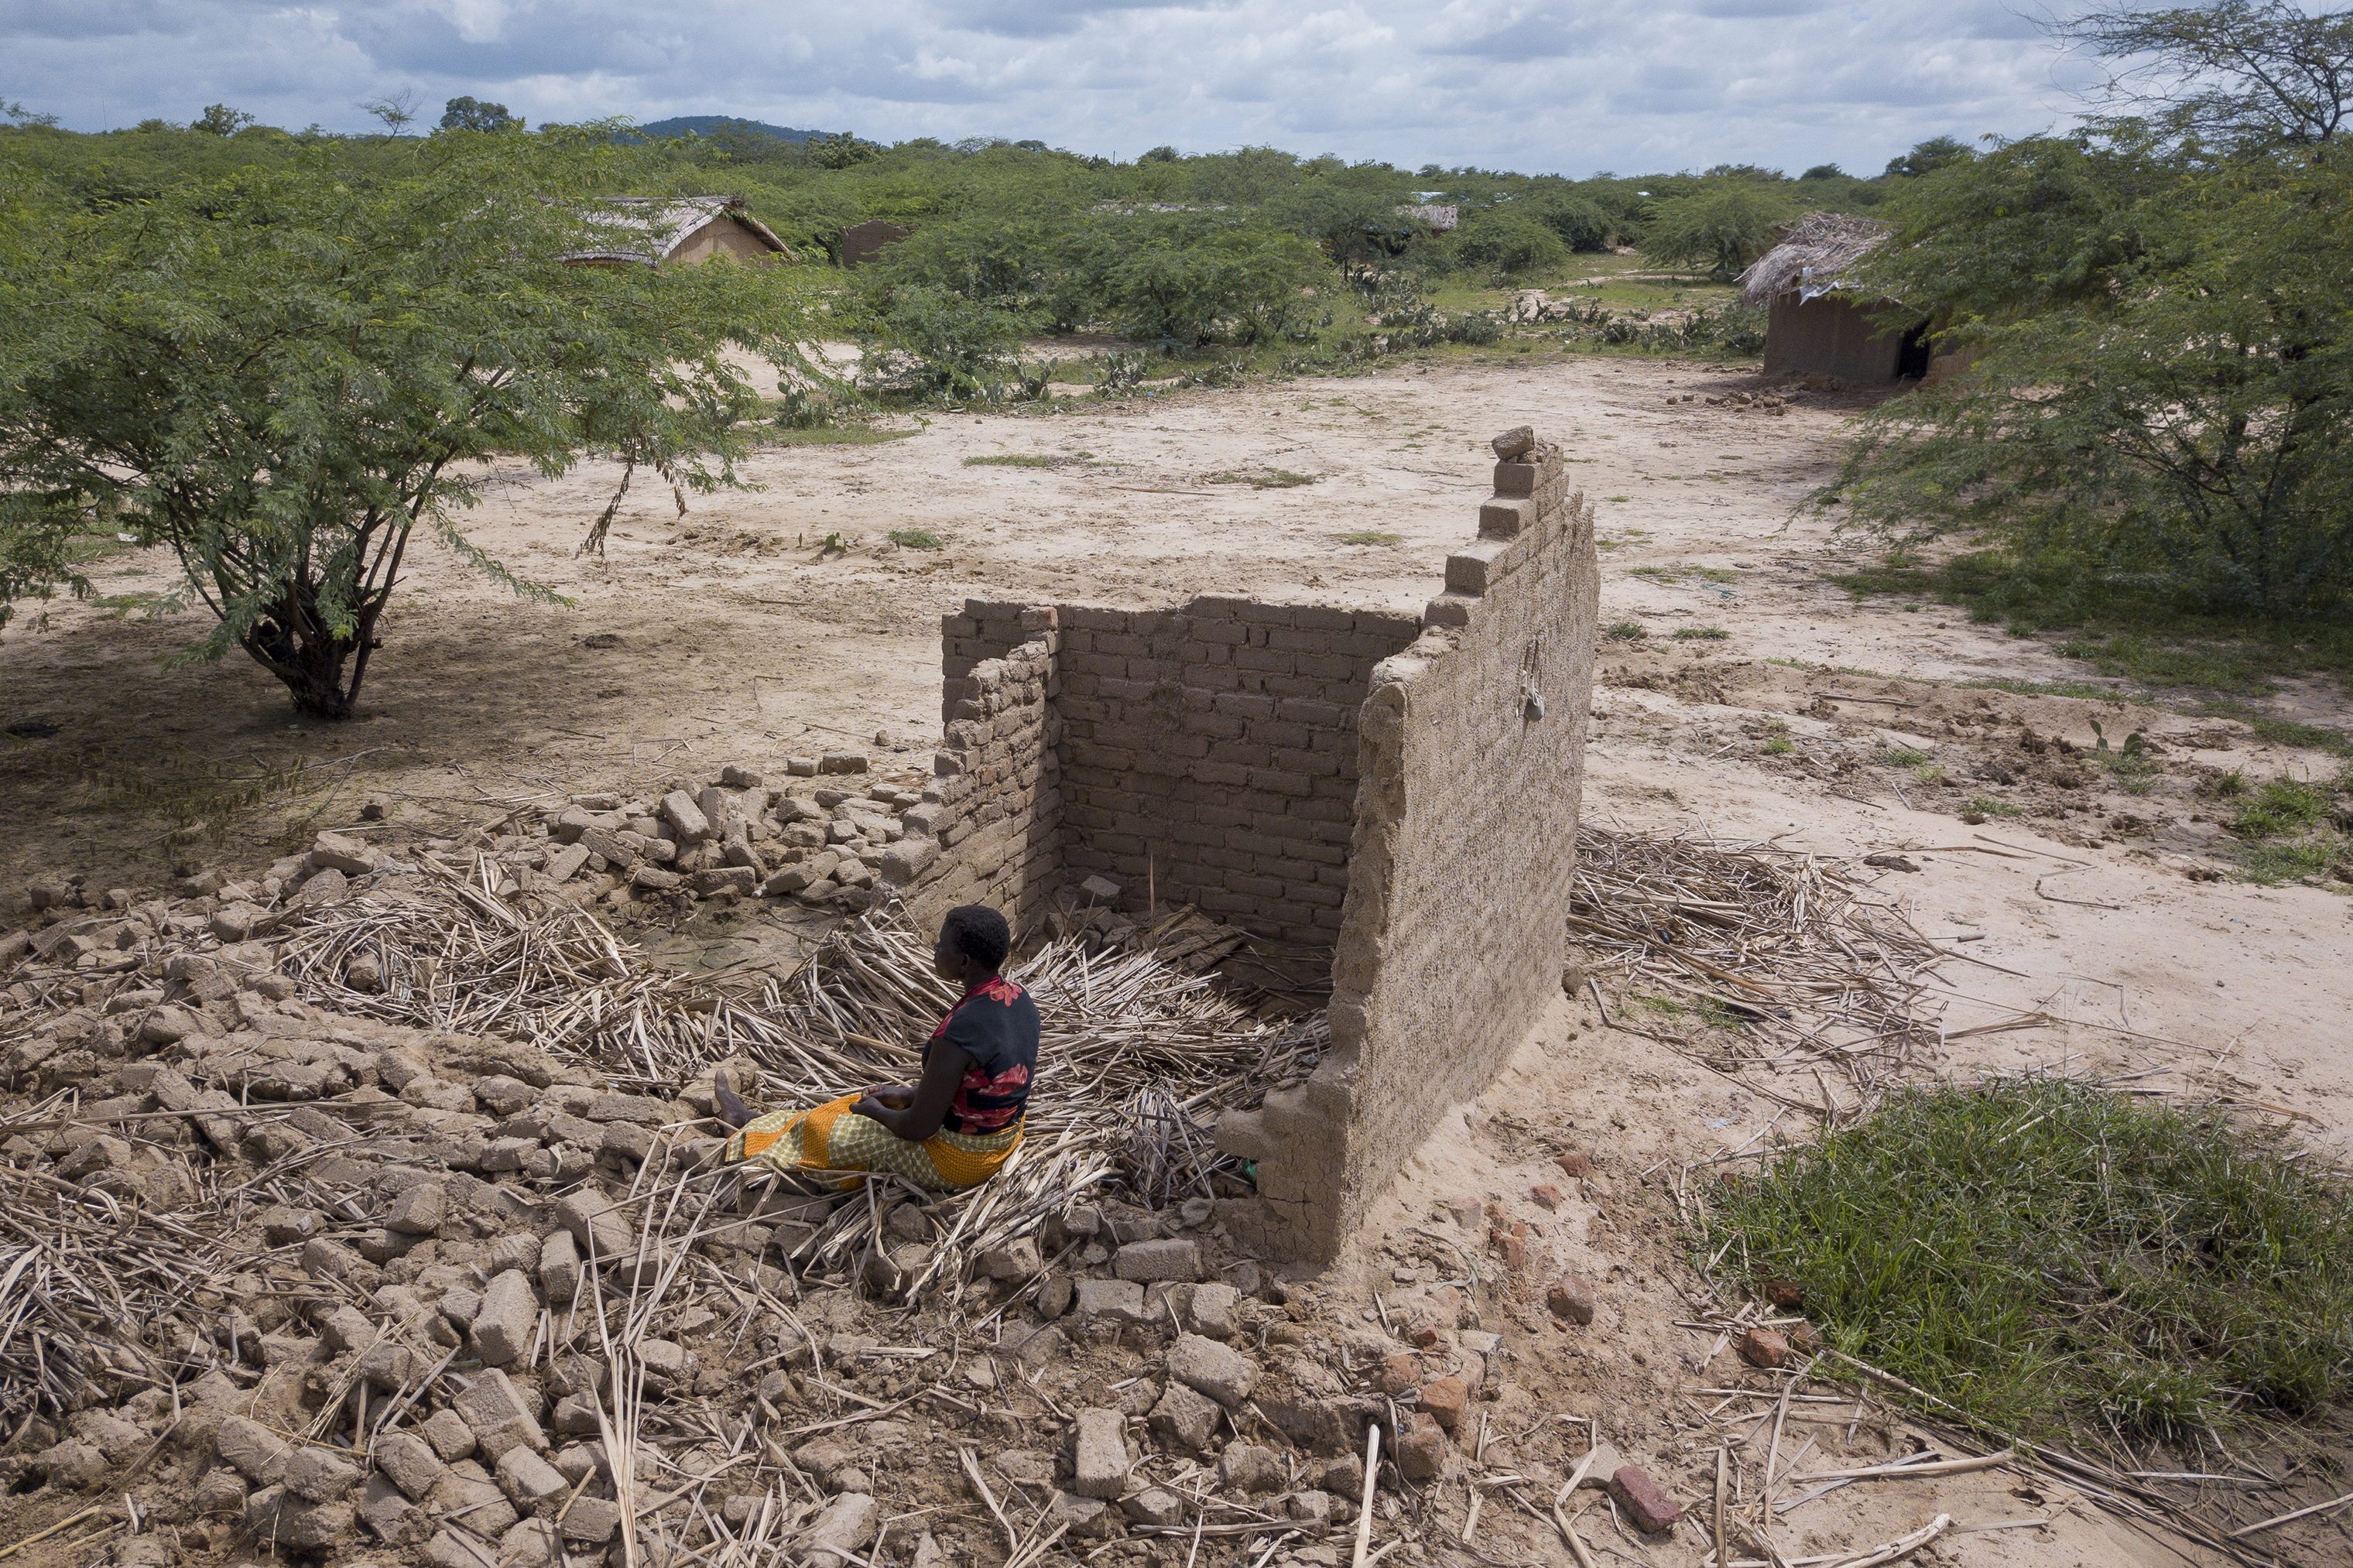 Eliza Jasi has experienced three floods: 2012, 2015, 2019. She has been able to rebuild her home using old bricks after each flood. This time around she will not be able to.